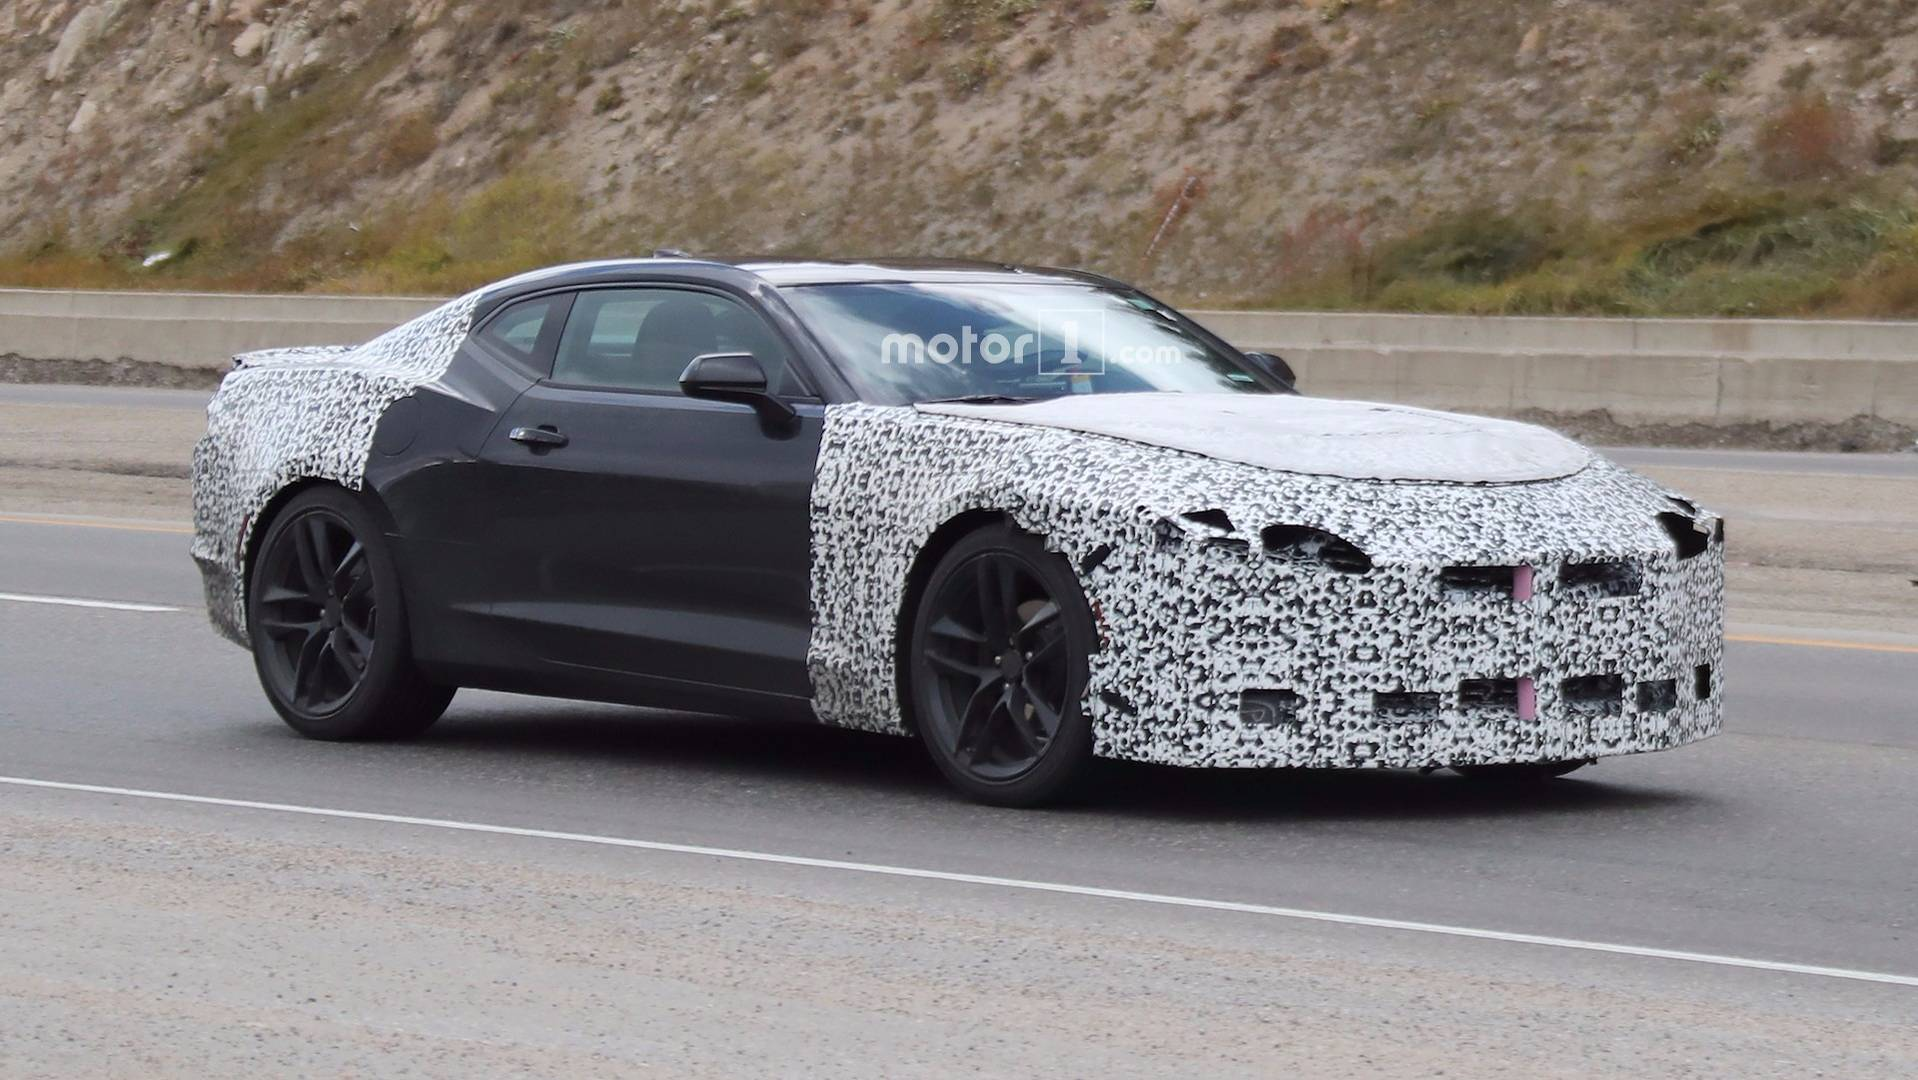 2019 Chevy Camaro Spied Shedding Some Camo